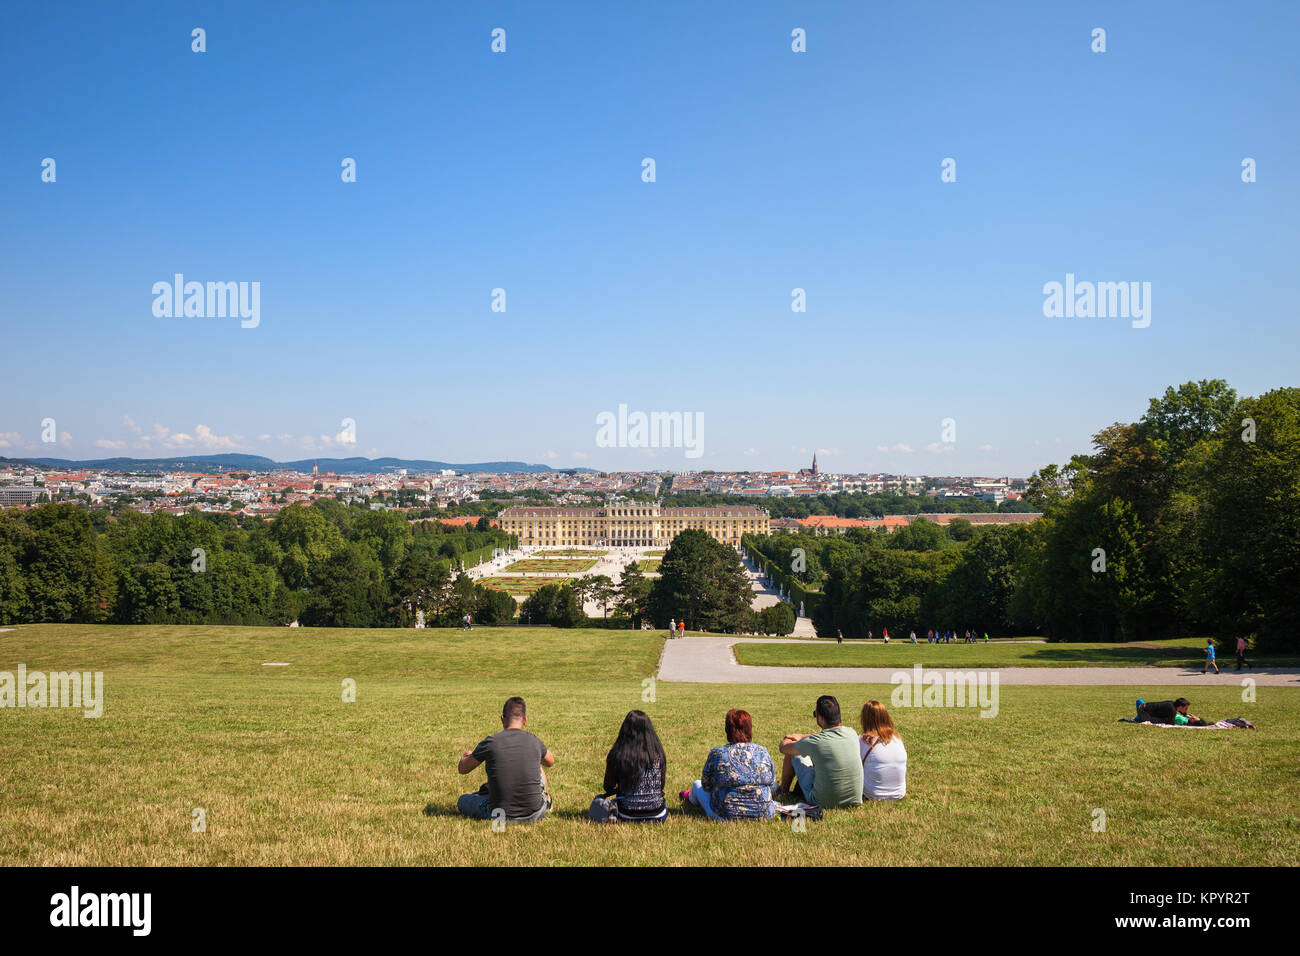 Group of people sitting on grass overlooking the Schonbrunn Palace and Vienna city from Schonbrunn park hill in - Stock Image